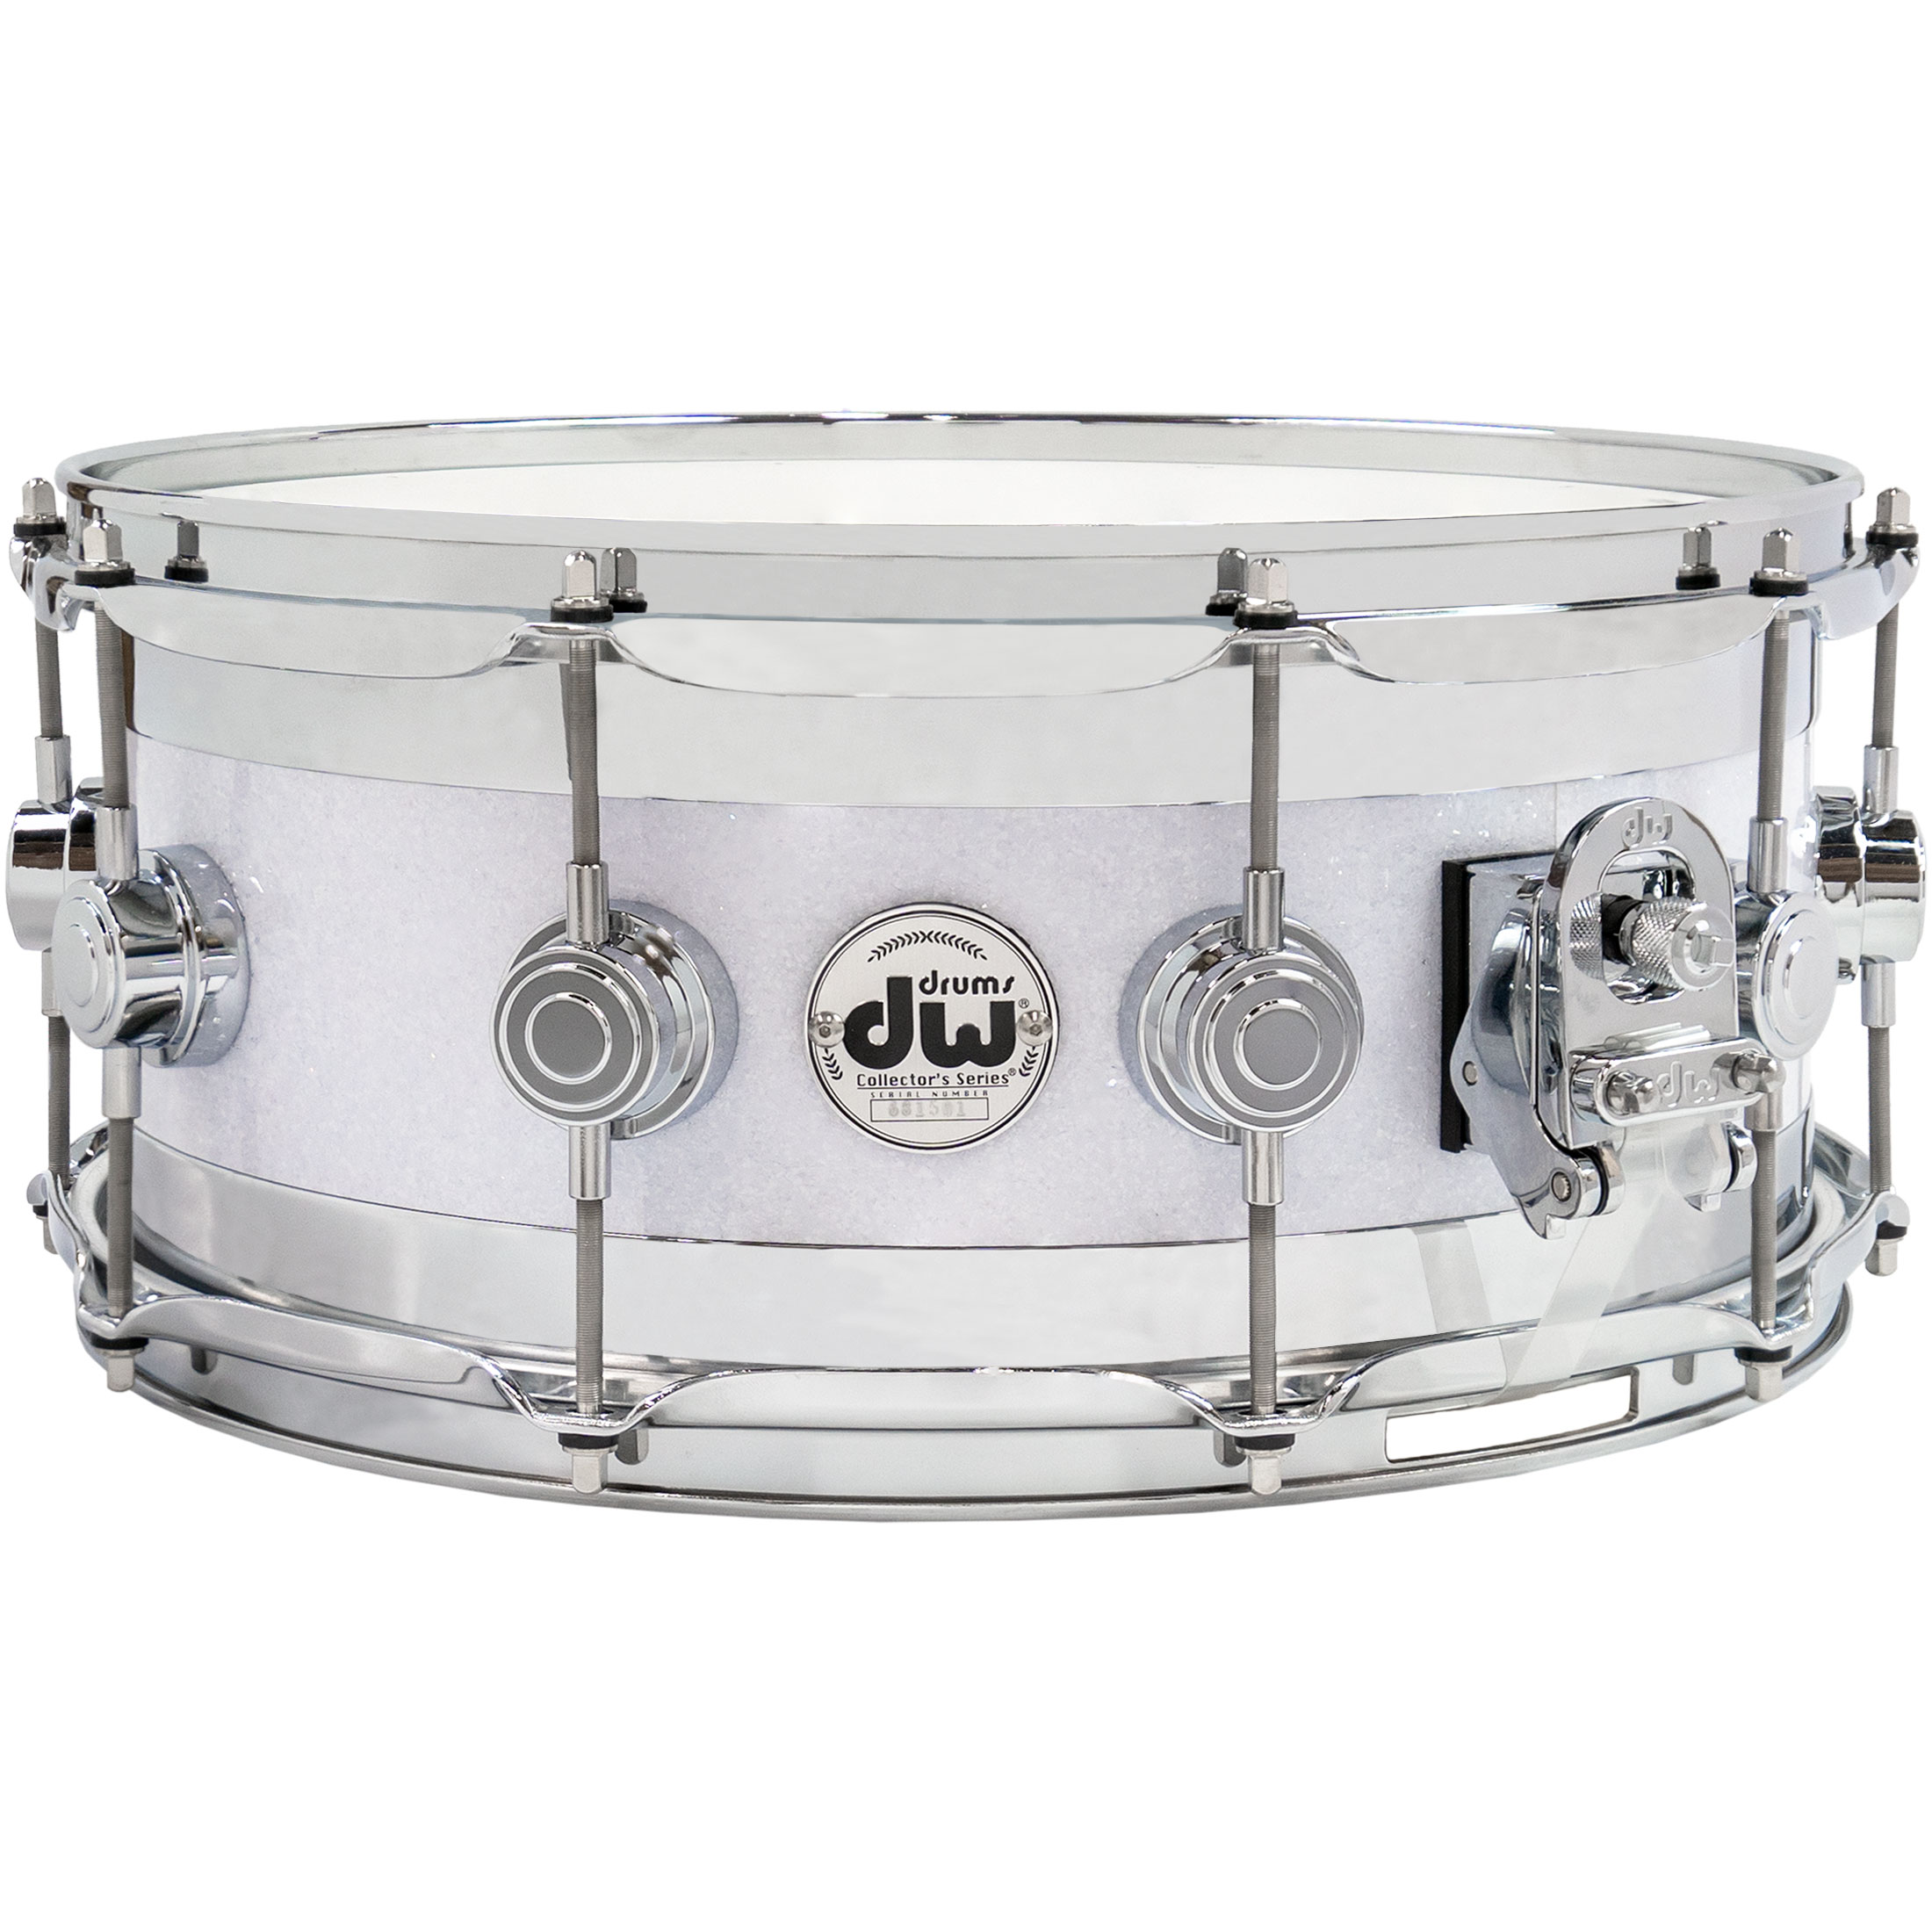 "DW 6"" x 14"" Collector"